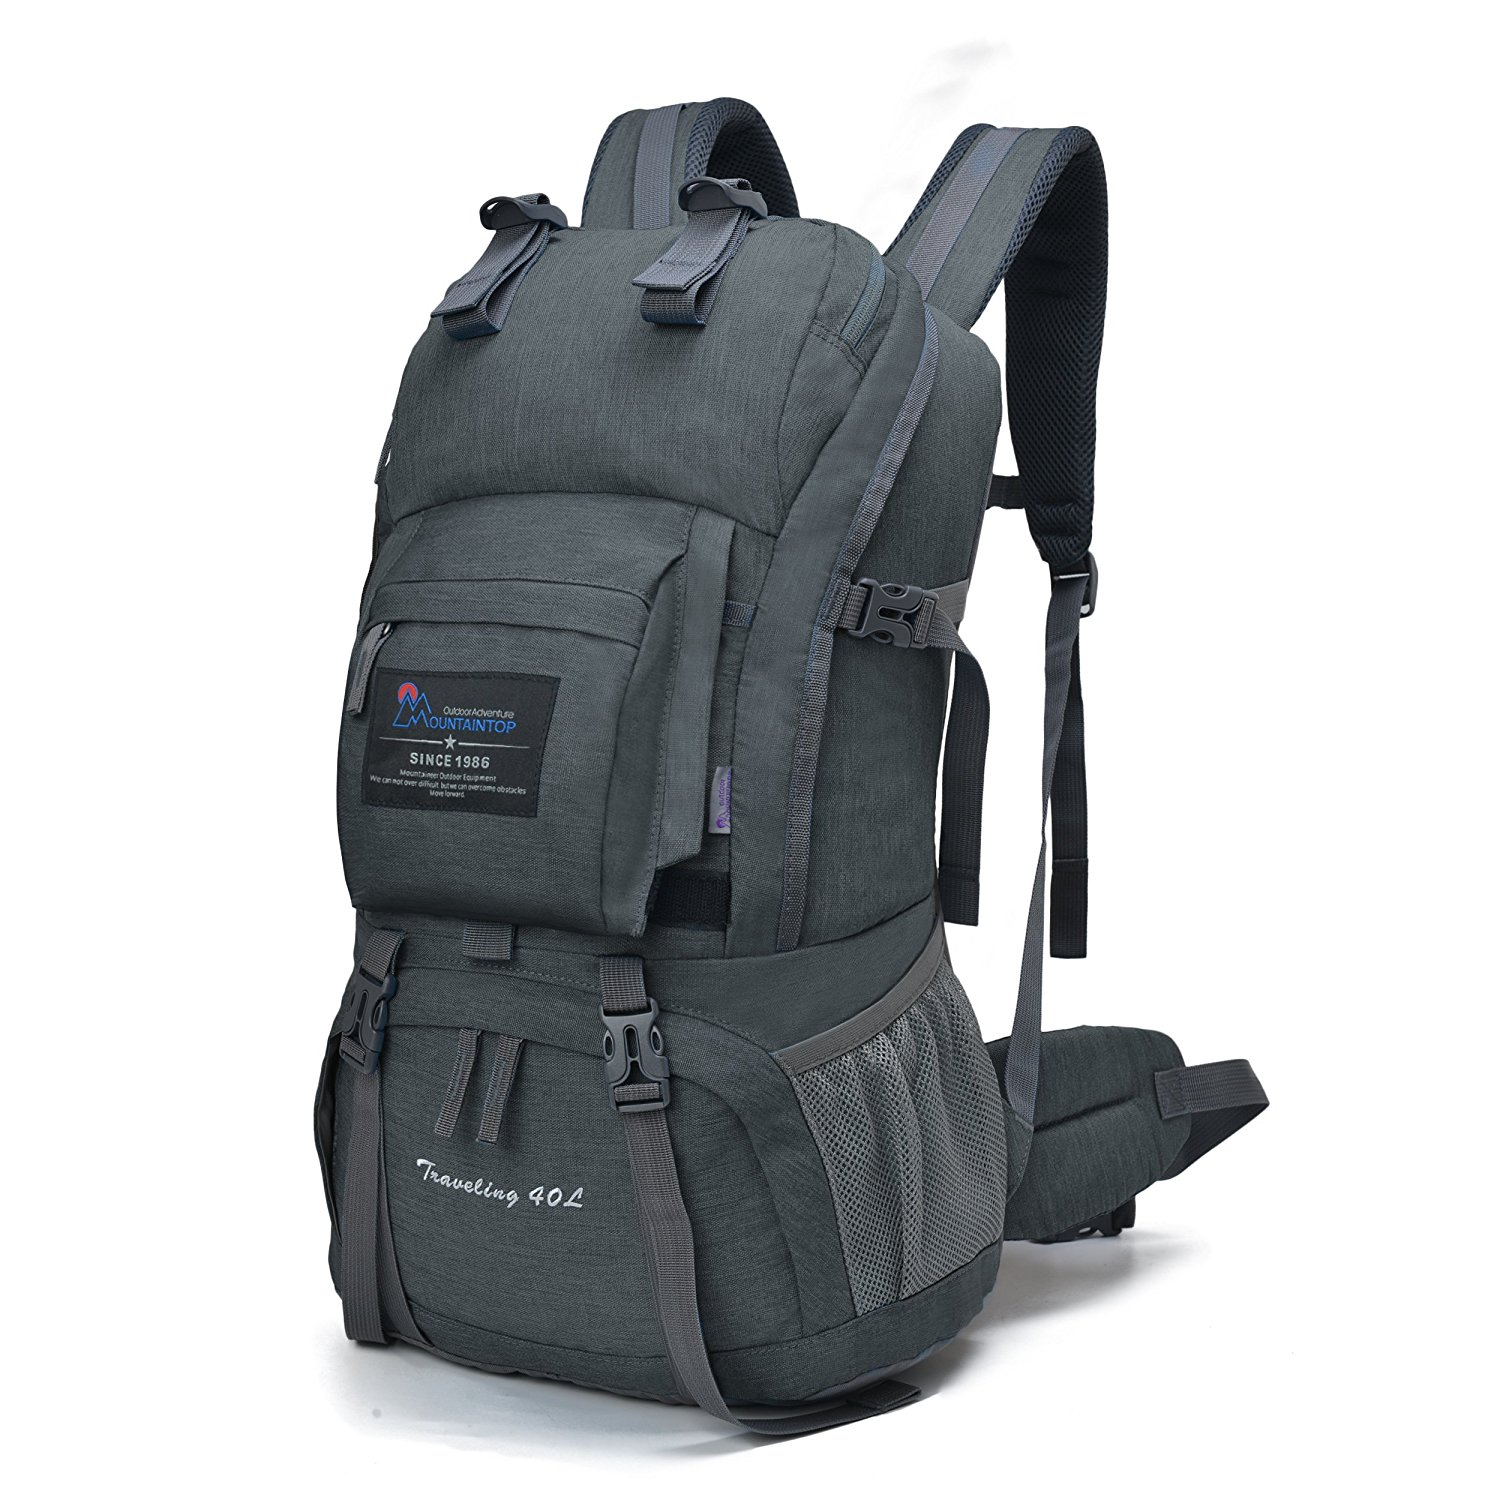 -  MOUNTAINTOP 40 LITER HIKING BACKPACK